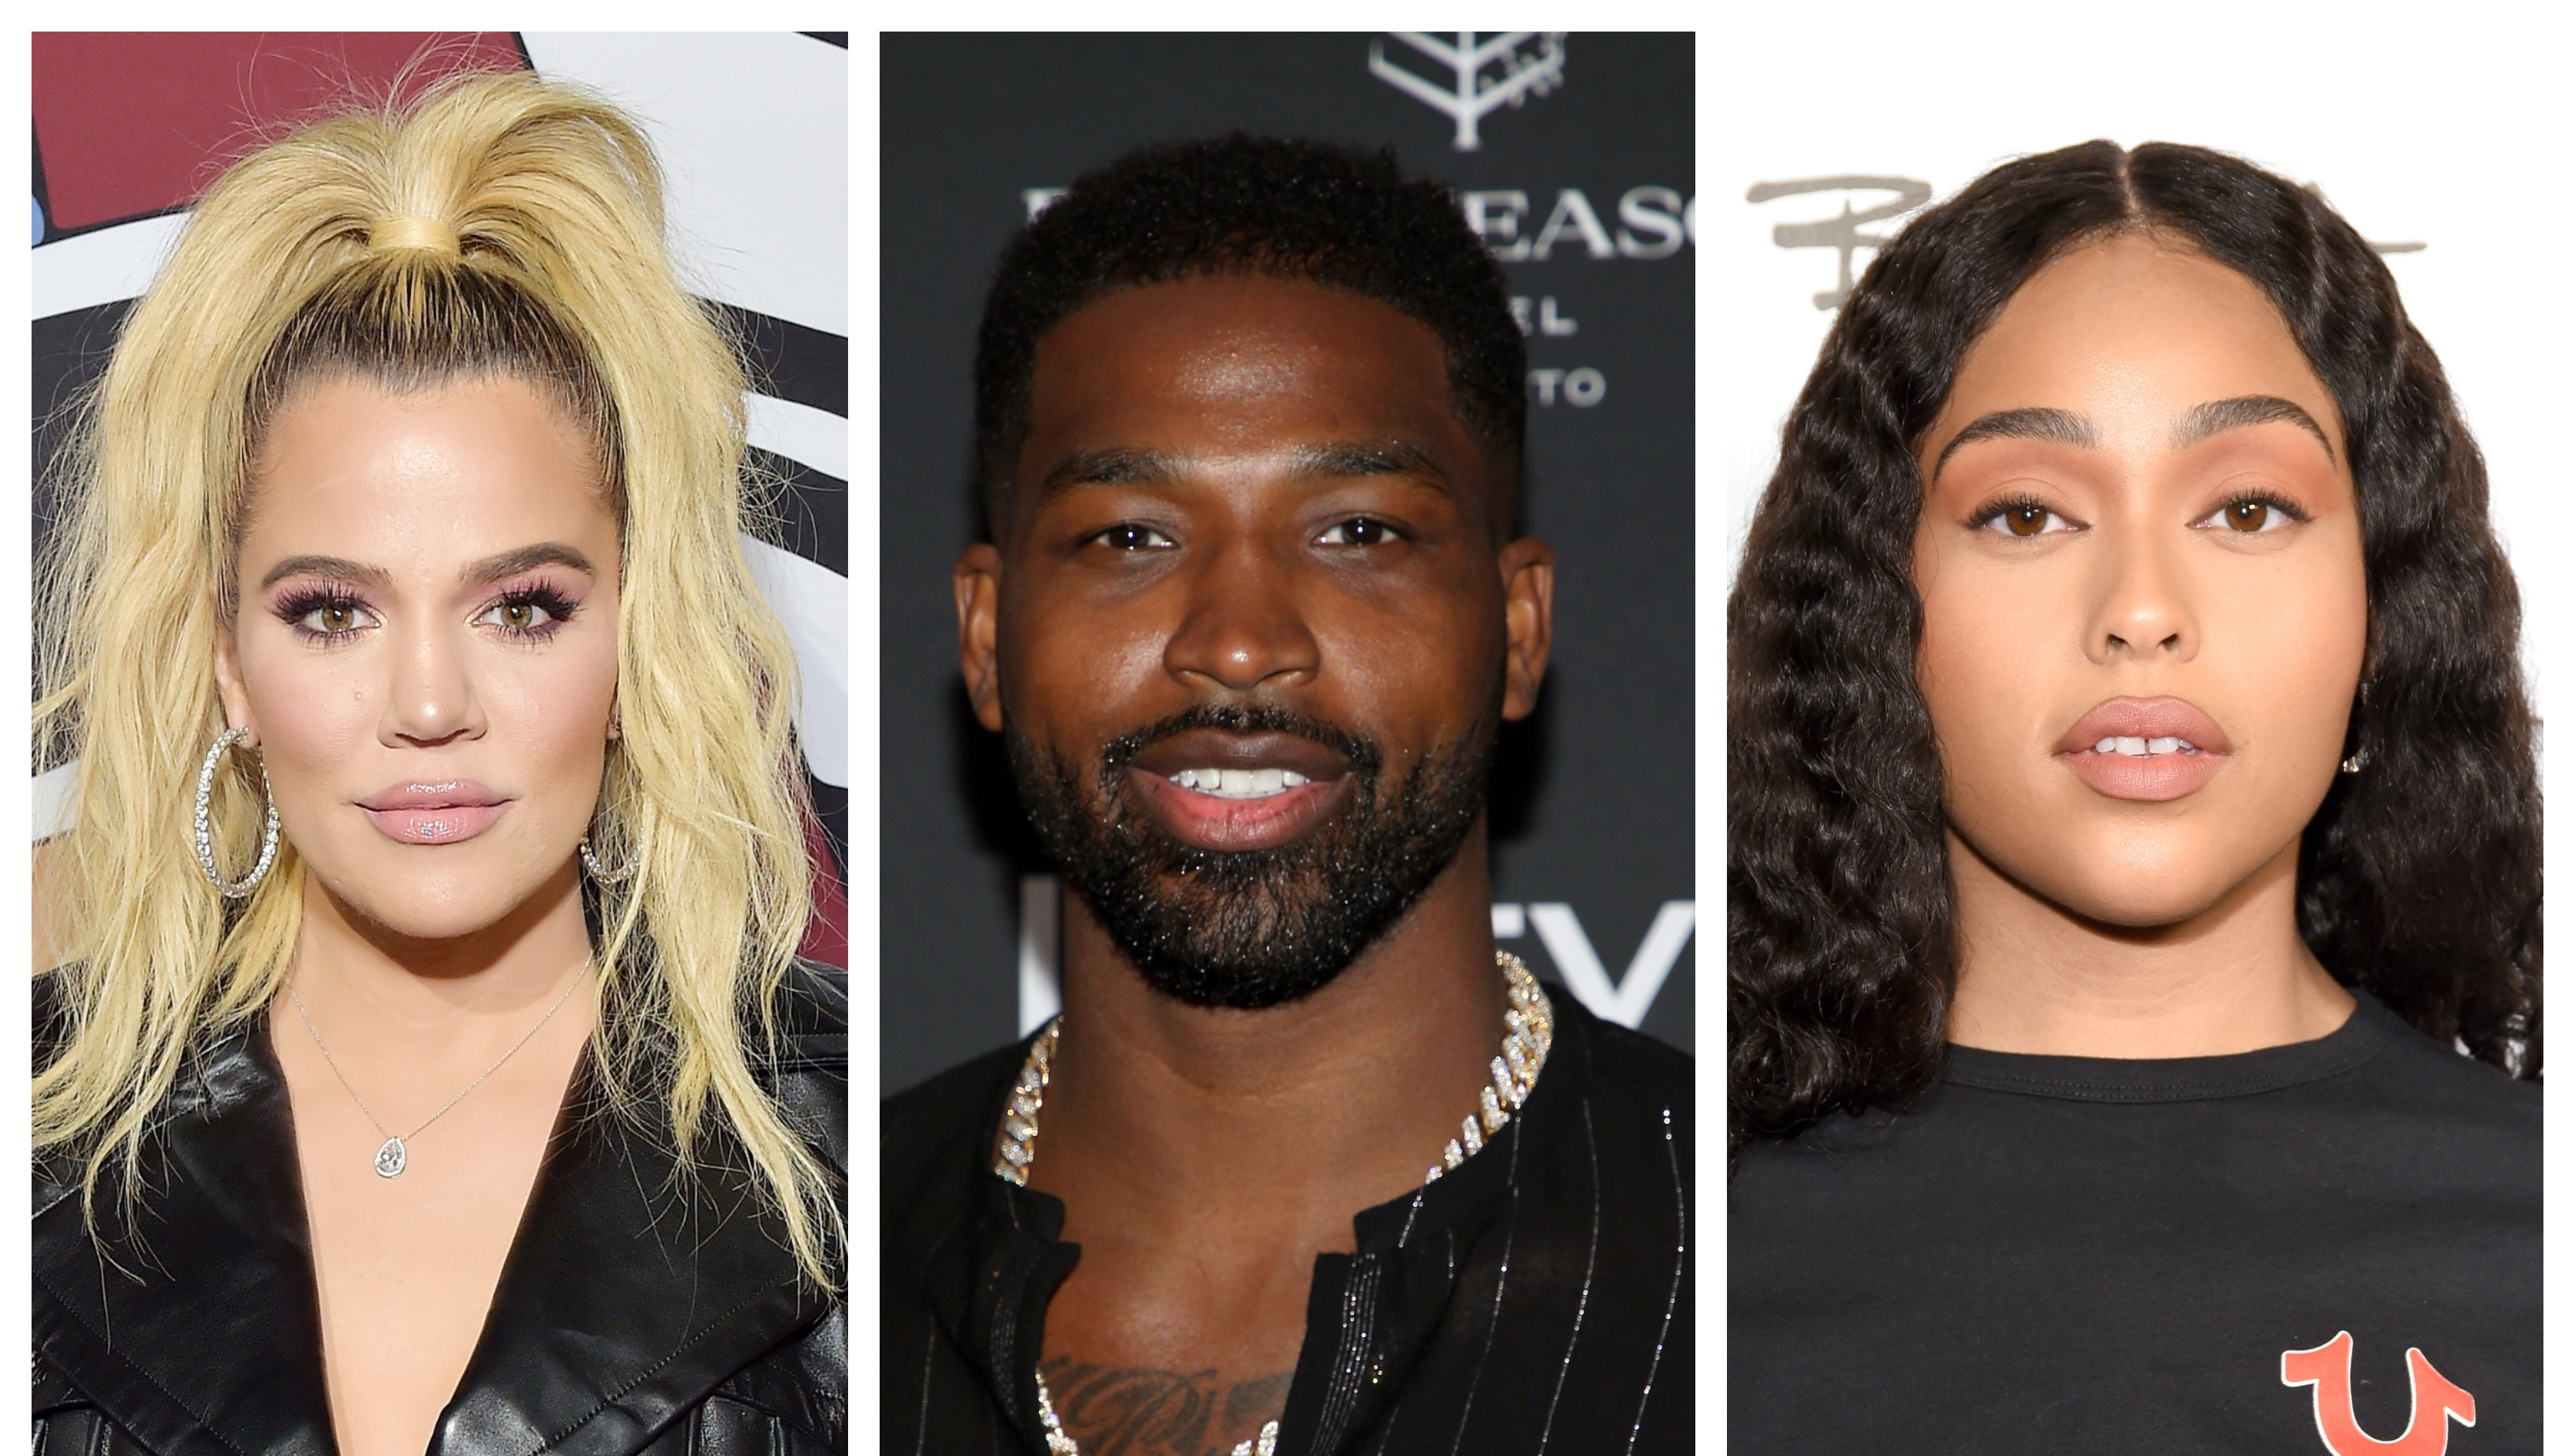 A split image of Khloe Kardashian, Tristan Thompson and Jordyn Woods